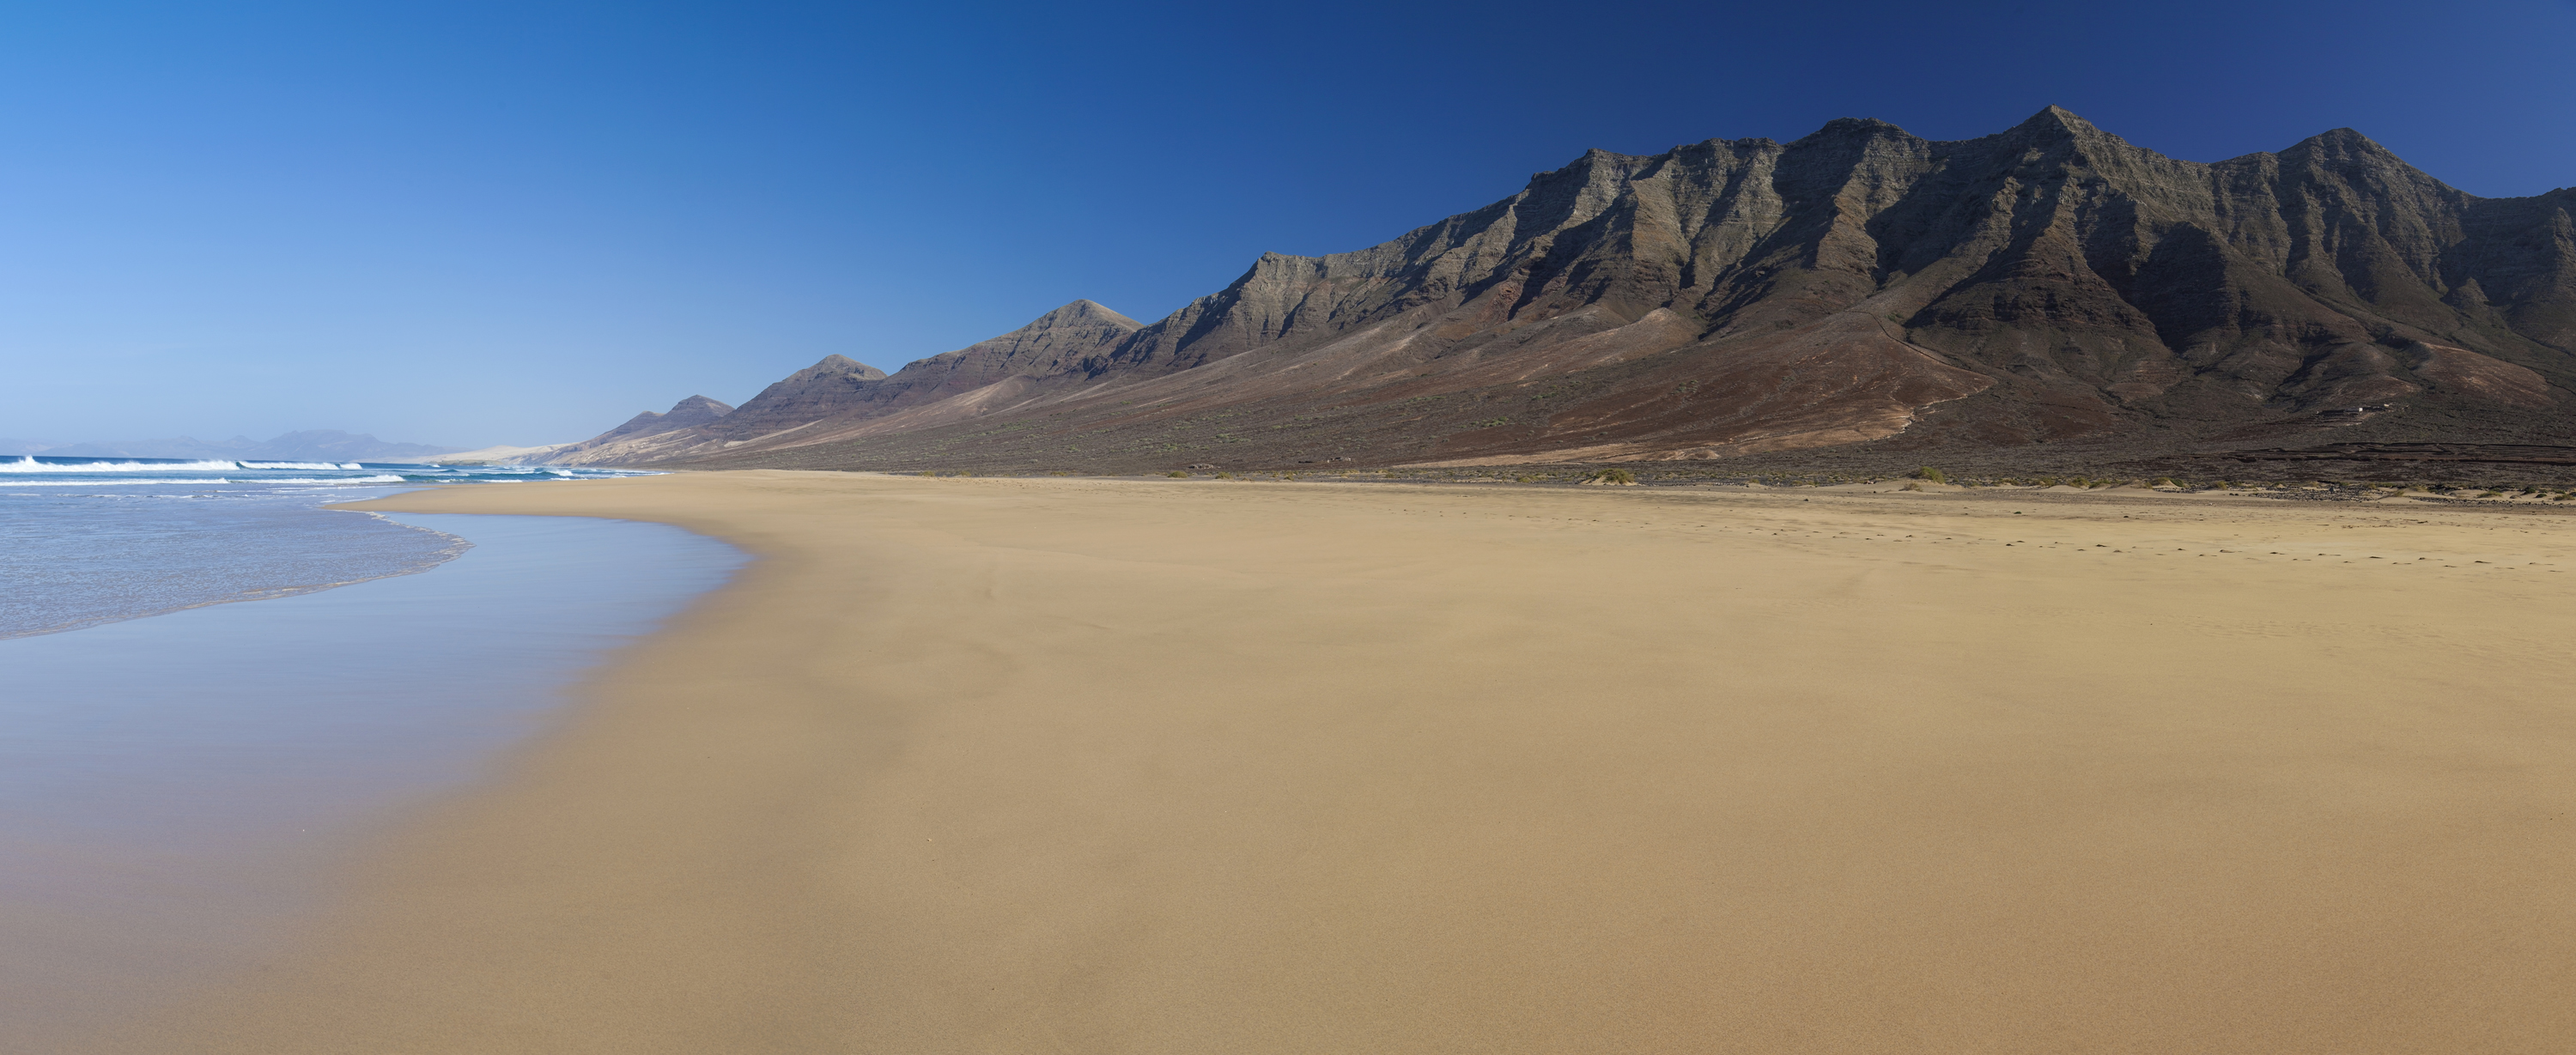 Photography of travel: Hiking in Fuerteventura and Lanzarote